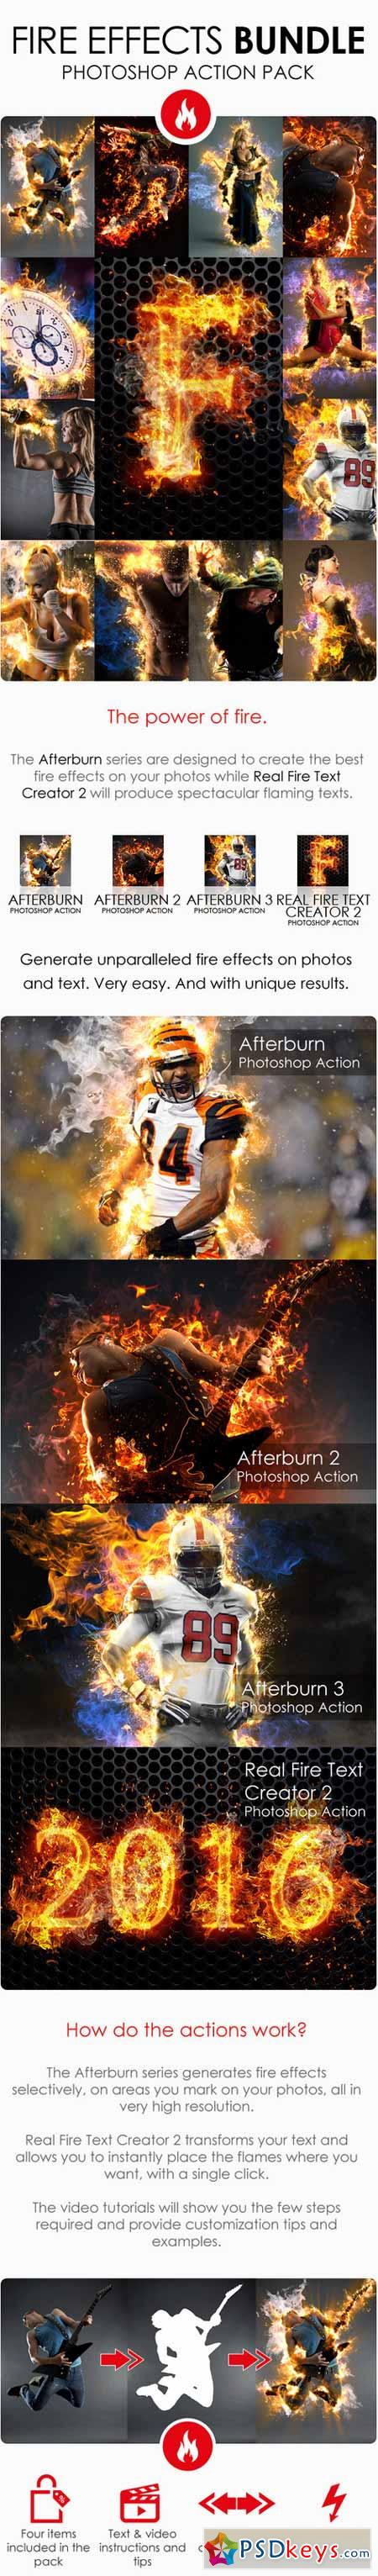 Fire Effects Bundle - Photoshop Actions 12165883